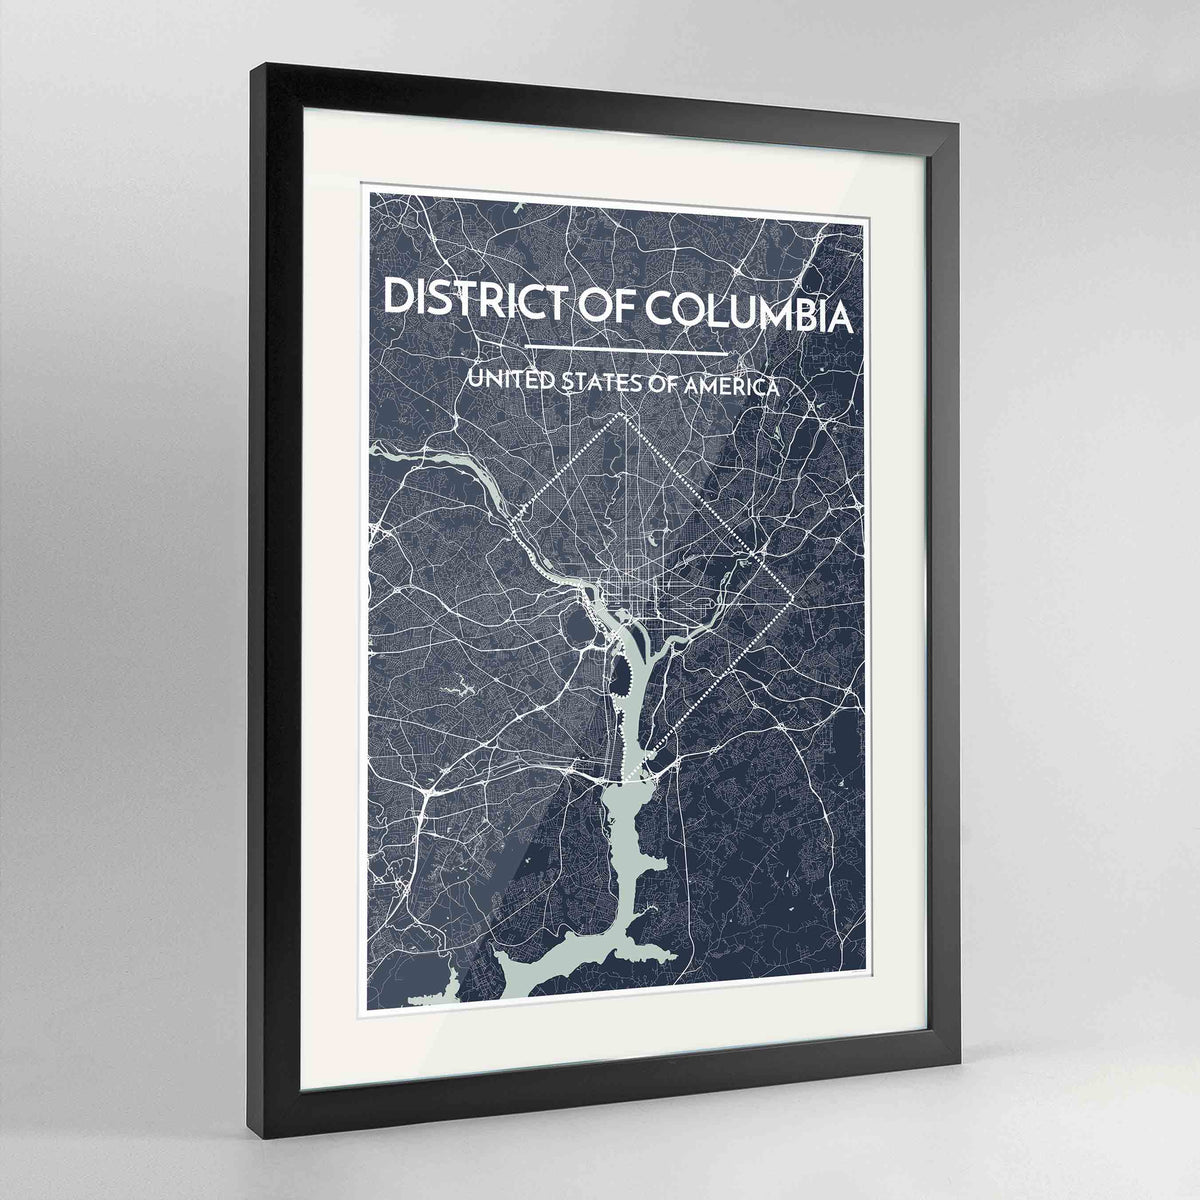 "Framed District of Columbia Map Art Print 24x36"" Contemporary Black frame Point Two Design Group"